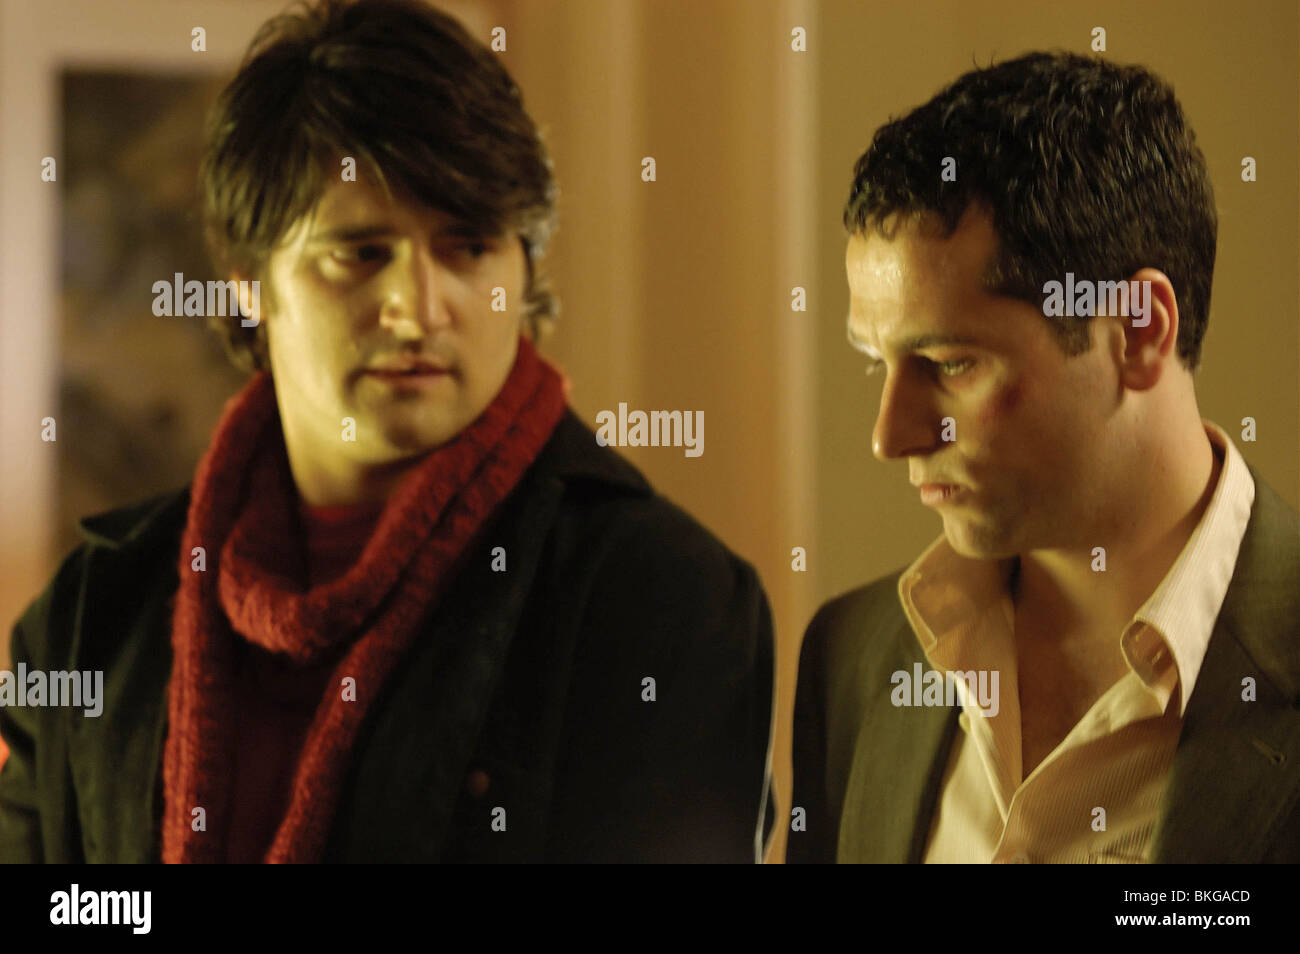 FAKERS (2004) TOM CHAMBERS, MATTHEW RHYS FKRS 001-007 - Stock Image